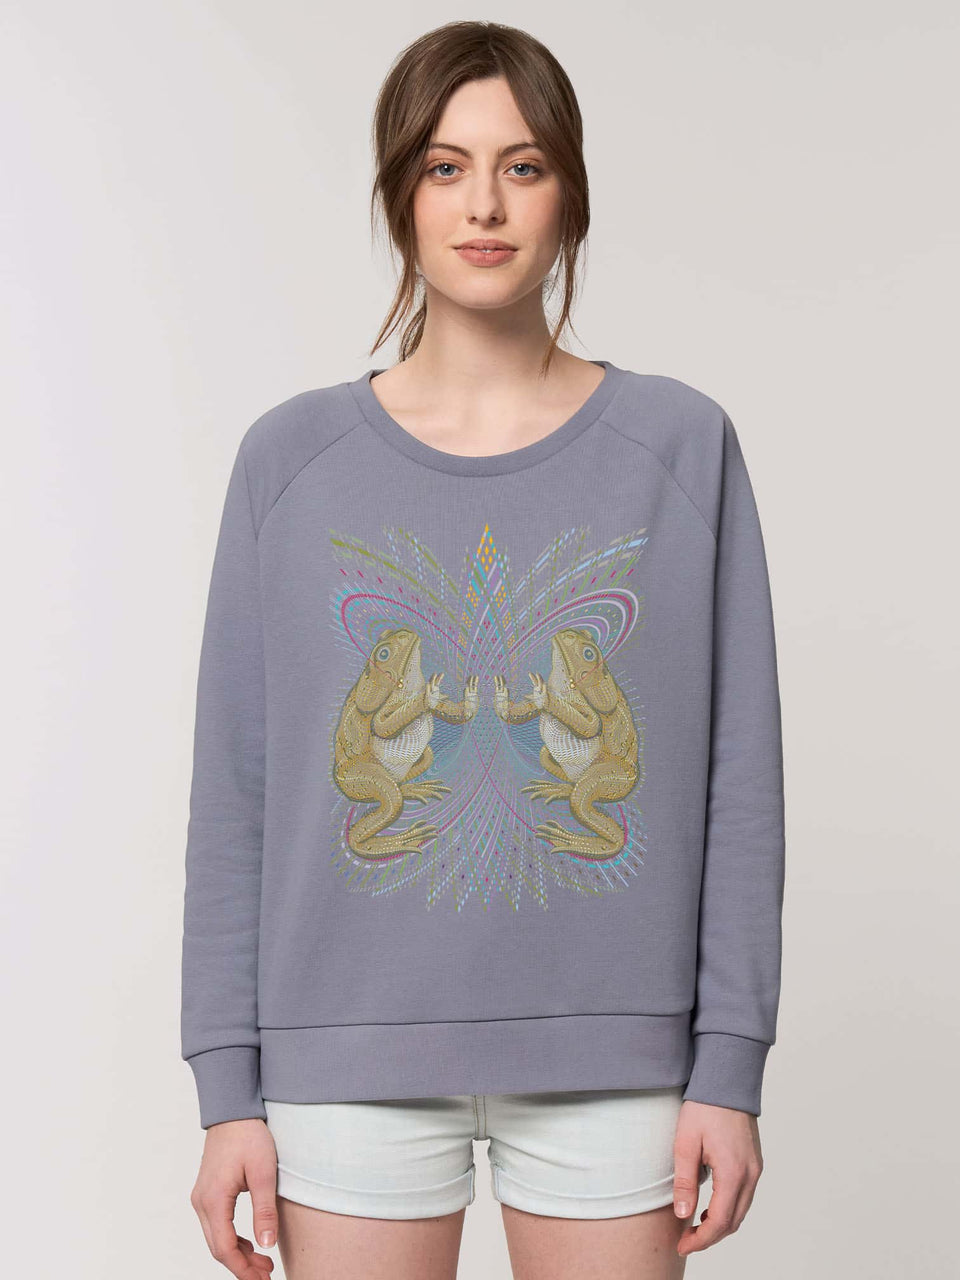 Bufo Alvarius Made To Order  Women relaxed fit sweatshirt - Lava Grey